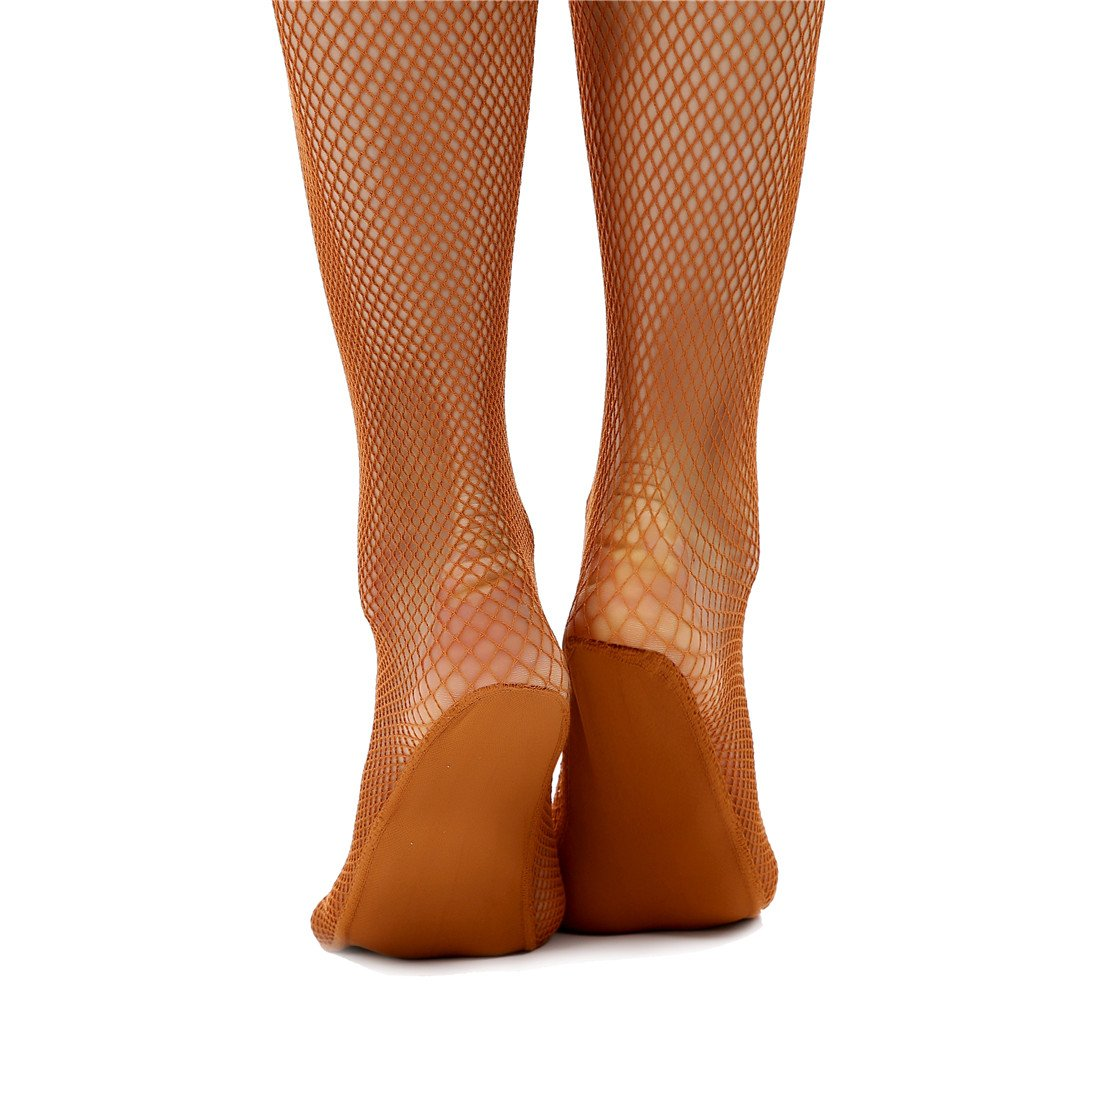 iMucci 3Pairs Women Soft Latin Tights Fishnet Stockings Girl Dancing Collants LatinTightsDN059